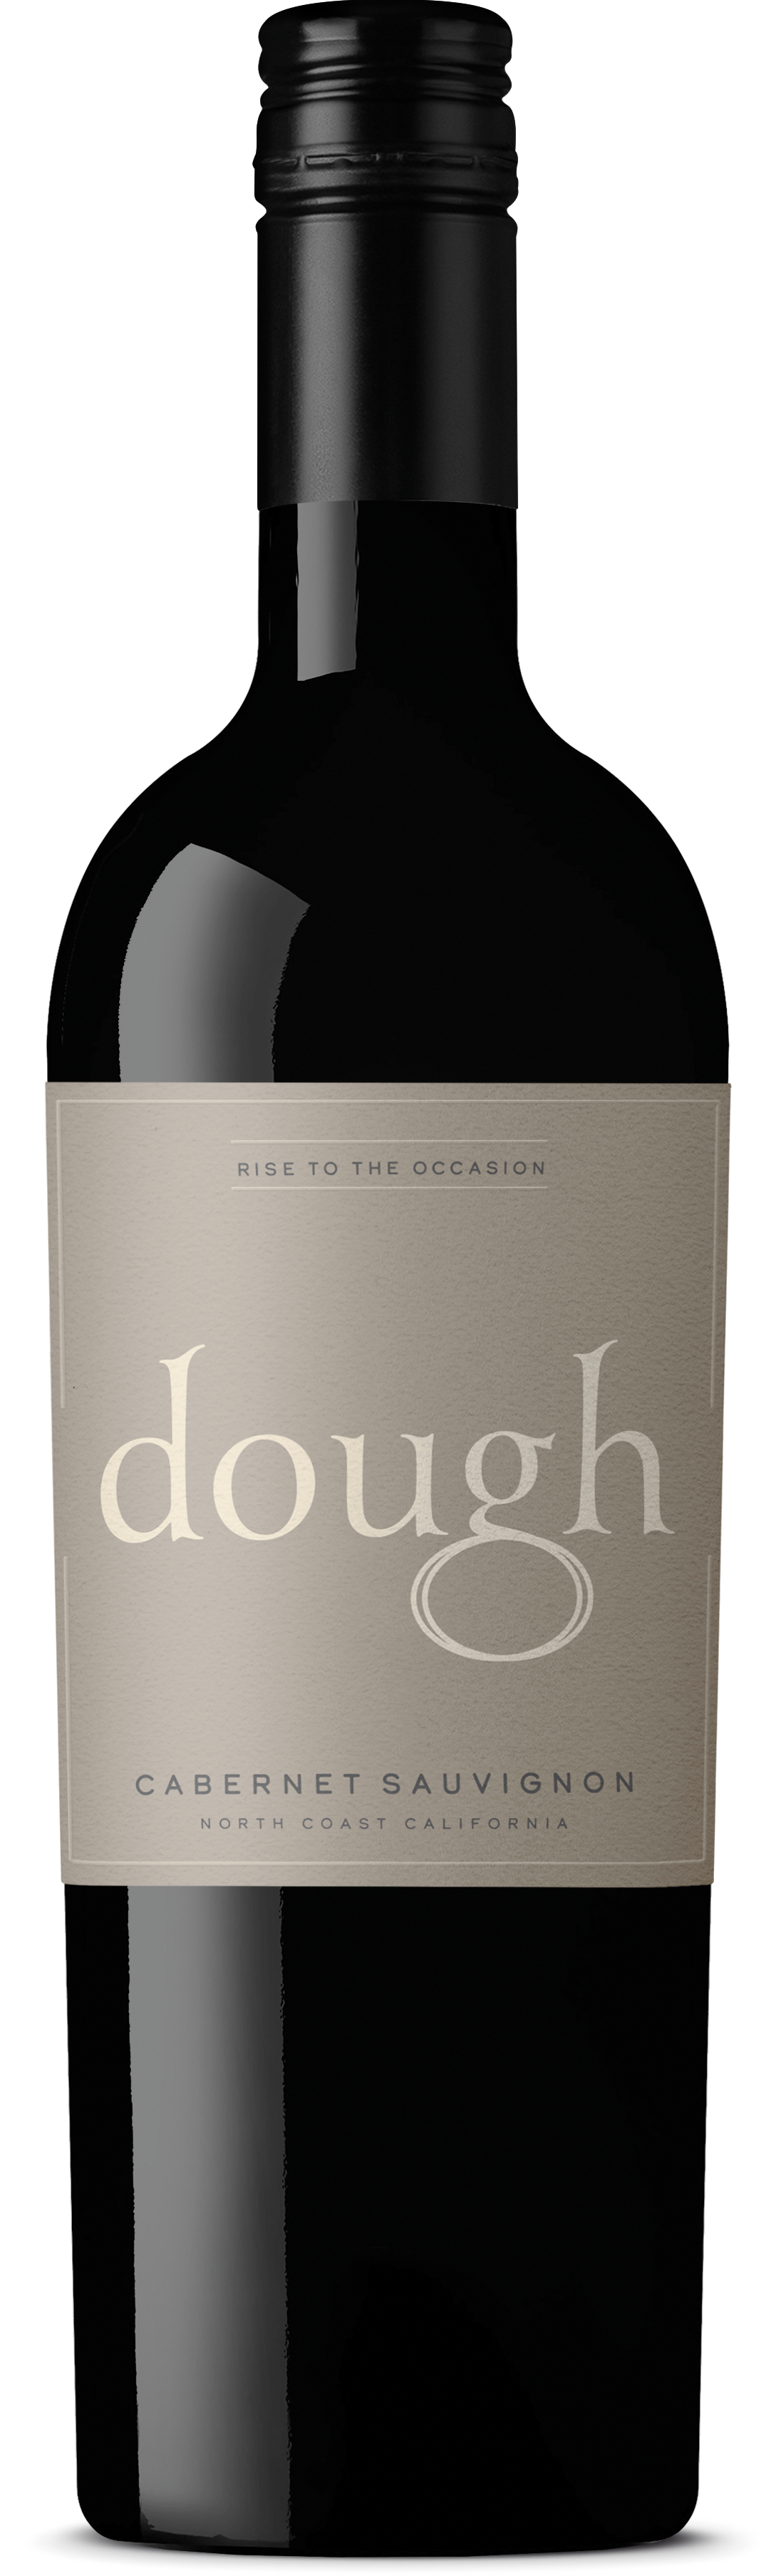 Dough Wines 2018 North Coast Cabernet Sauvignon